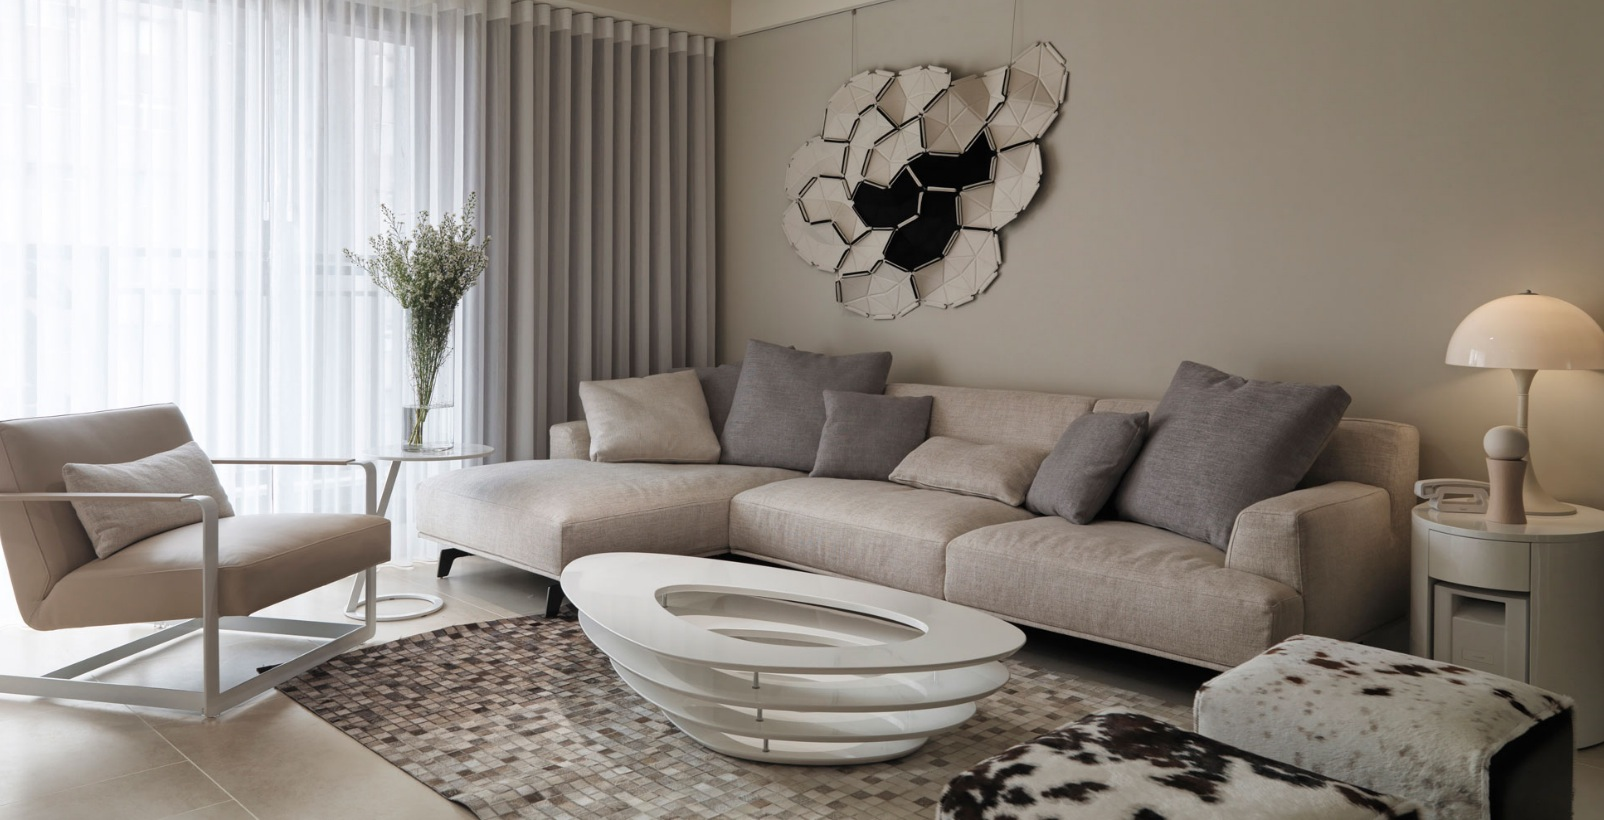 Neutral contemporary living room interior design ideas for Neutral home decor ideas